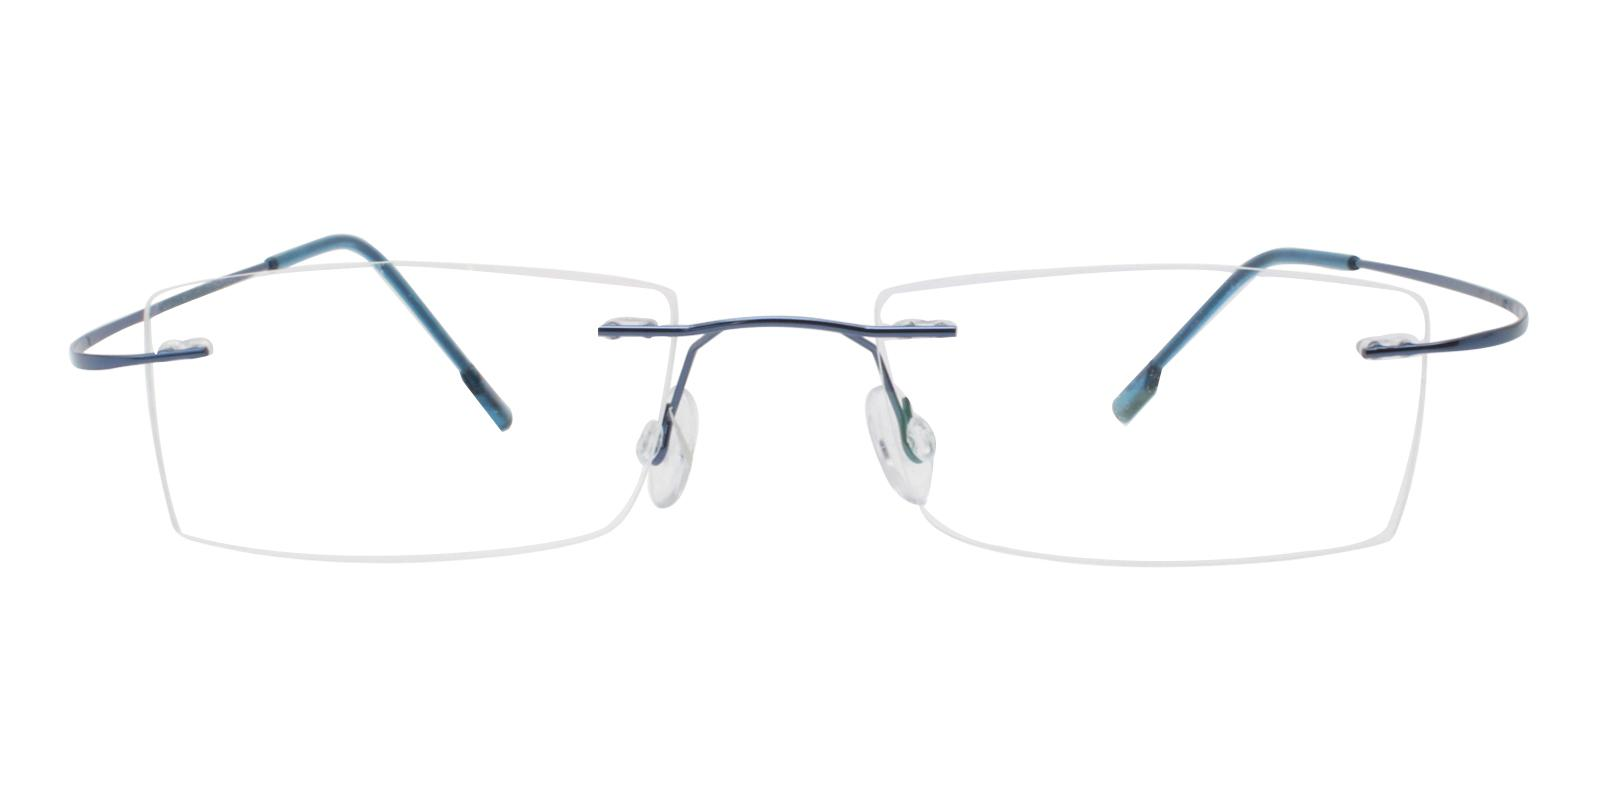 Isabel Blue Metal , Memory Eyeglasses , NosePads Frames from ABBE Glasses